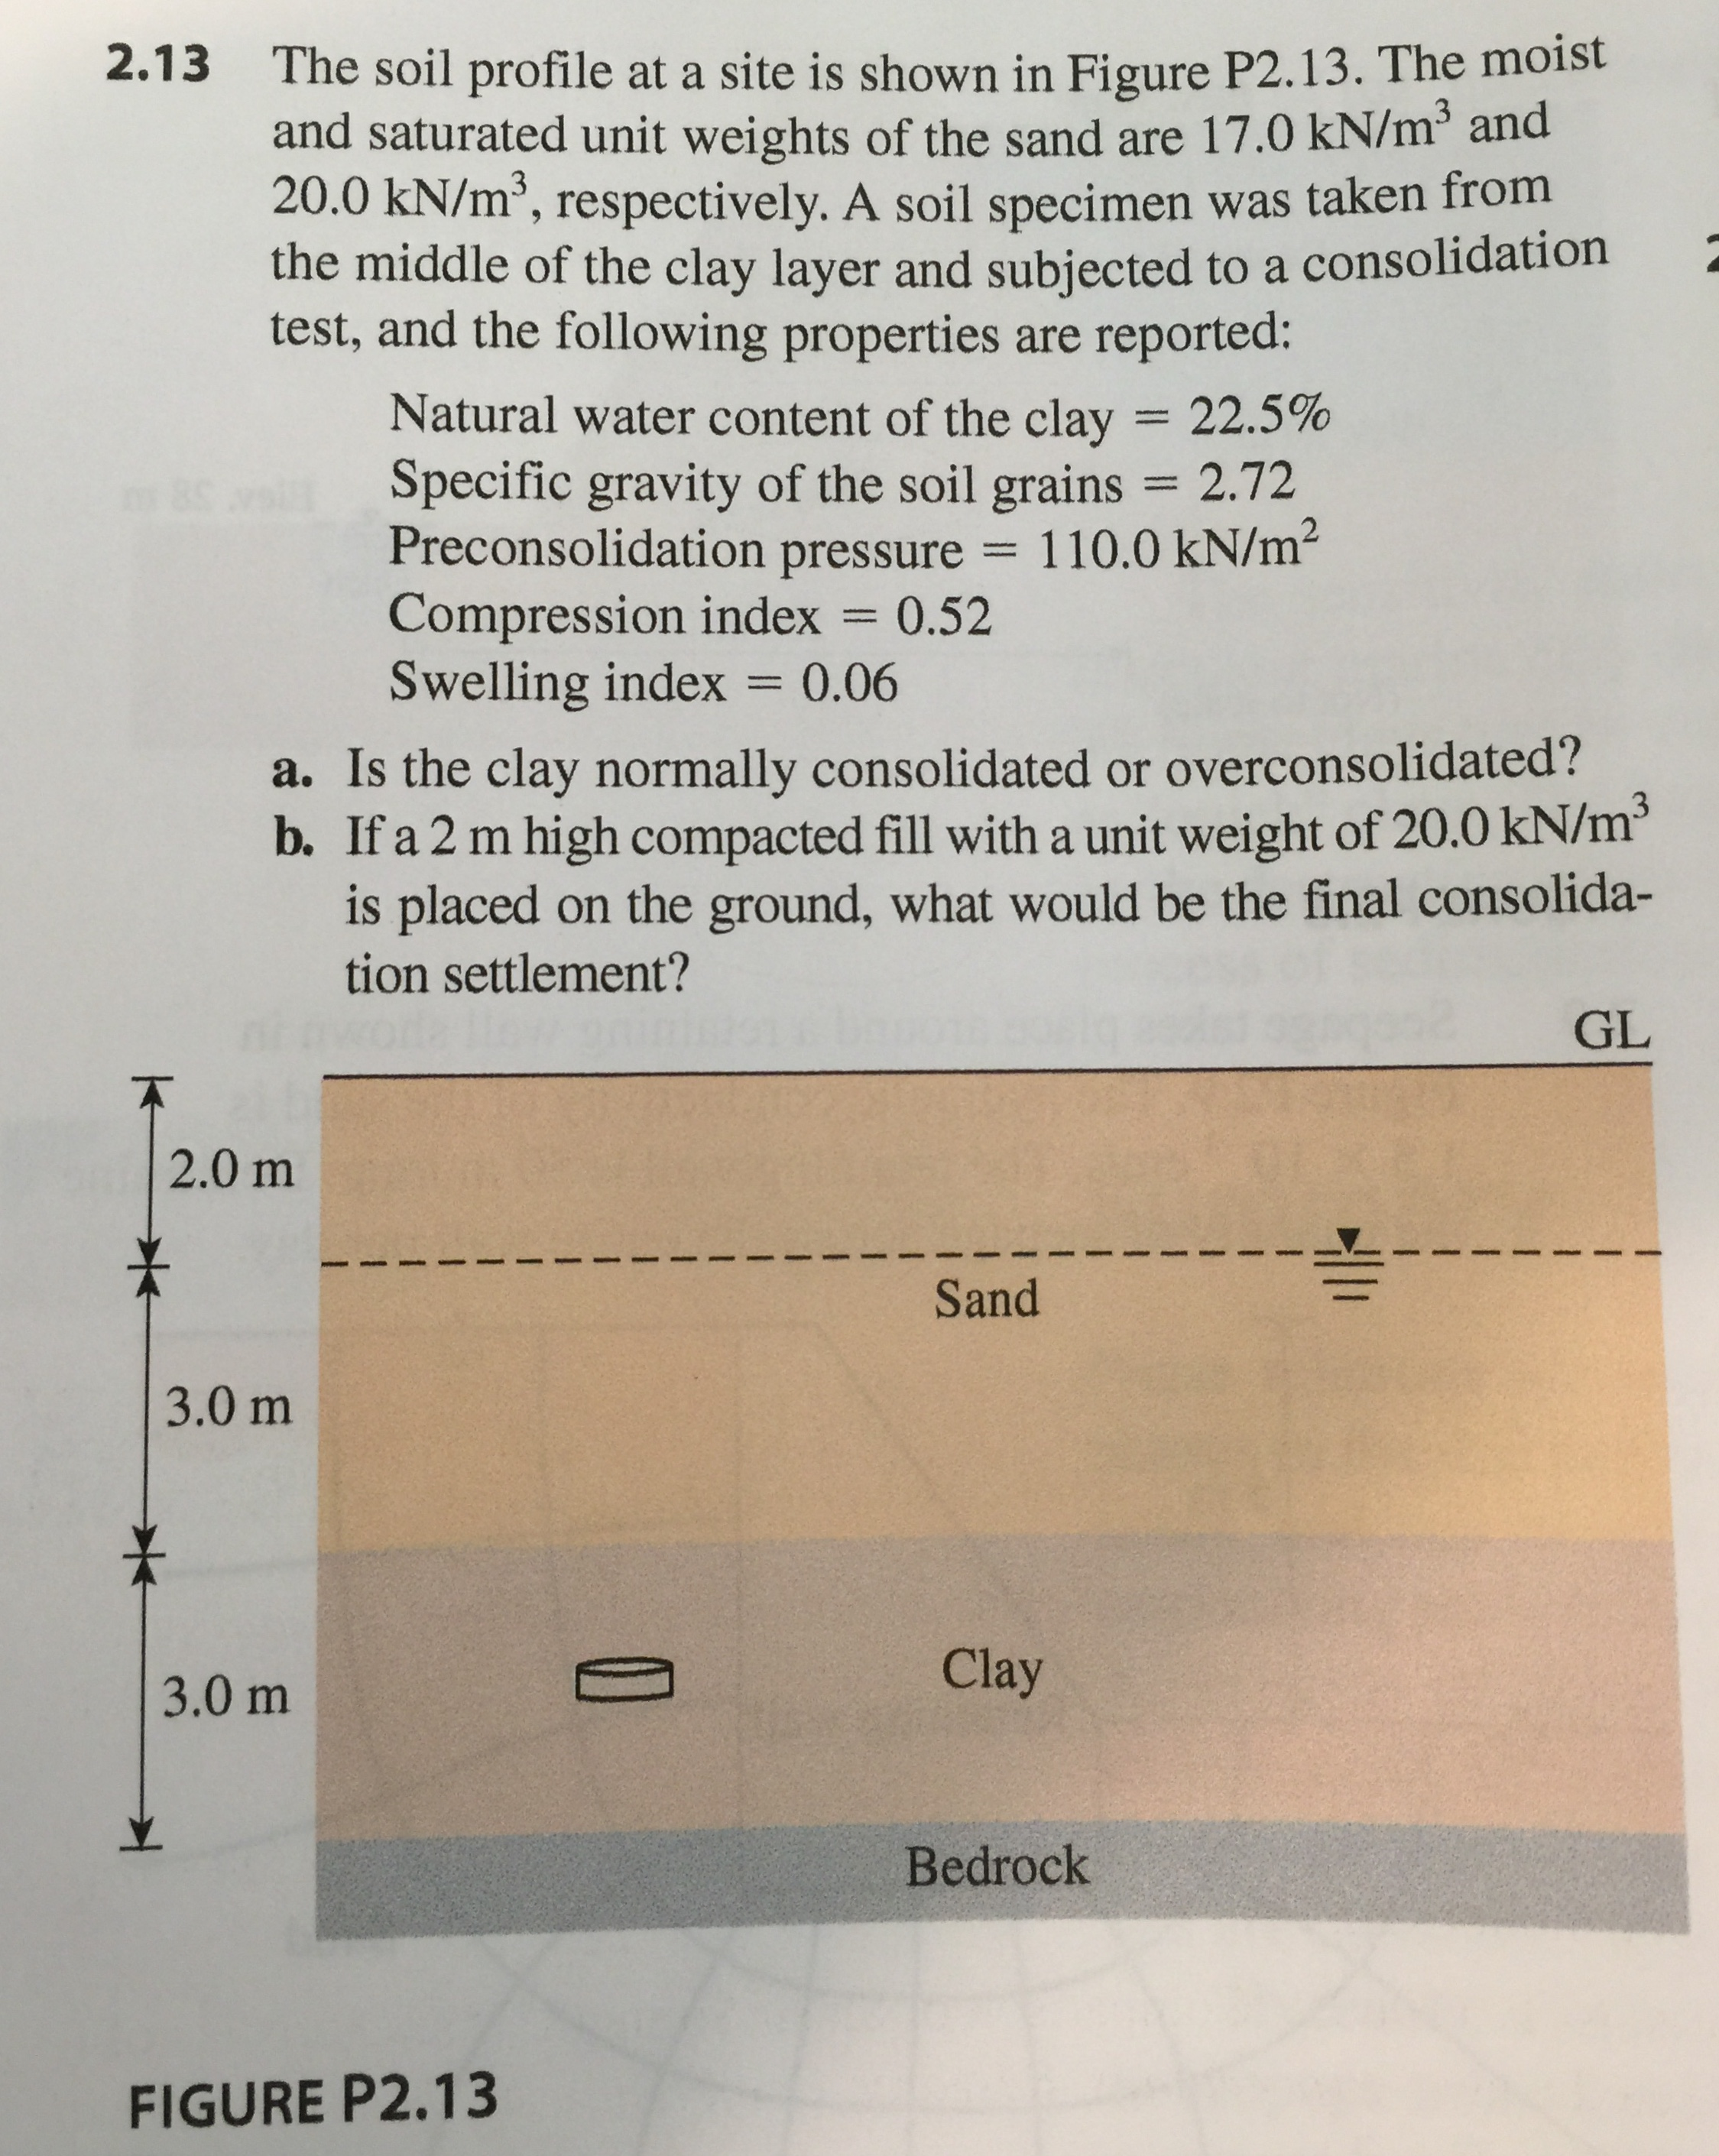 2.13 The soil profile at a site is shown in Figure P2.13. The moist and saturated unit weights of the sand are 17.0 kN/m2 and 20.0 kN/m3, respectively. A soil specimen was taken from the middle of the clay layer and subjected to a consolidation test, and the following properties are reported: Natural water content of the clay = 22.5% Specific gravity of the soil grains 2.72 Preconsolidation pressure 110.0 kN/m2 Compression index = 0.52 Swelling index 0.06 a. Is the clay normally consolidated or overconsolidated? b. If a 2 m high compacted fll with a unit weight of 20.0 kN/m3 is placed on the ground, what would be the final consolida- tion settlement? GL 2.0 m Sand 3.0 m Clay 3.0 m Bedrock FIGURE P2.13